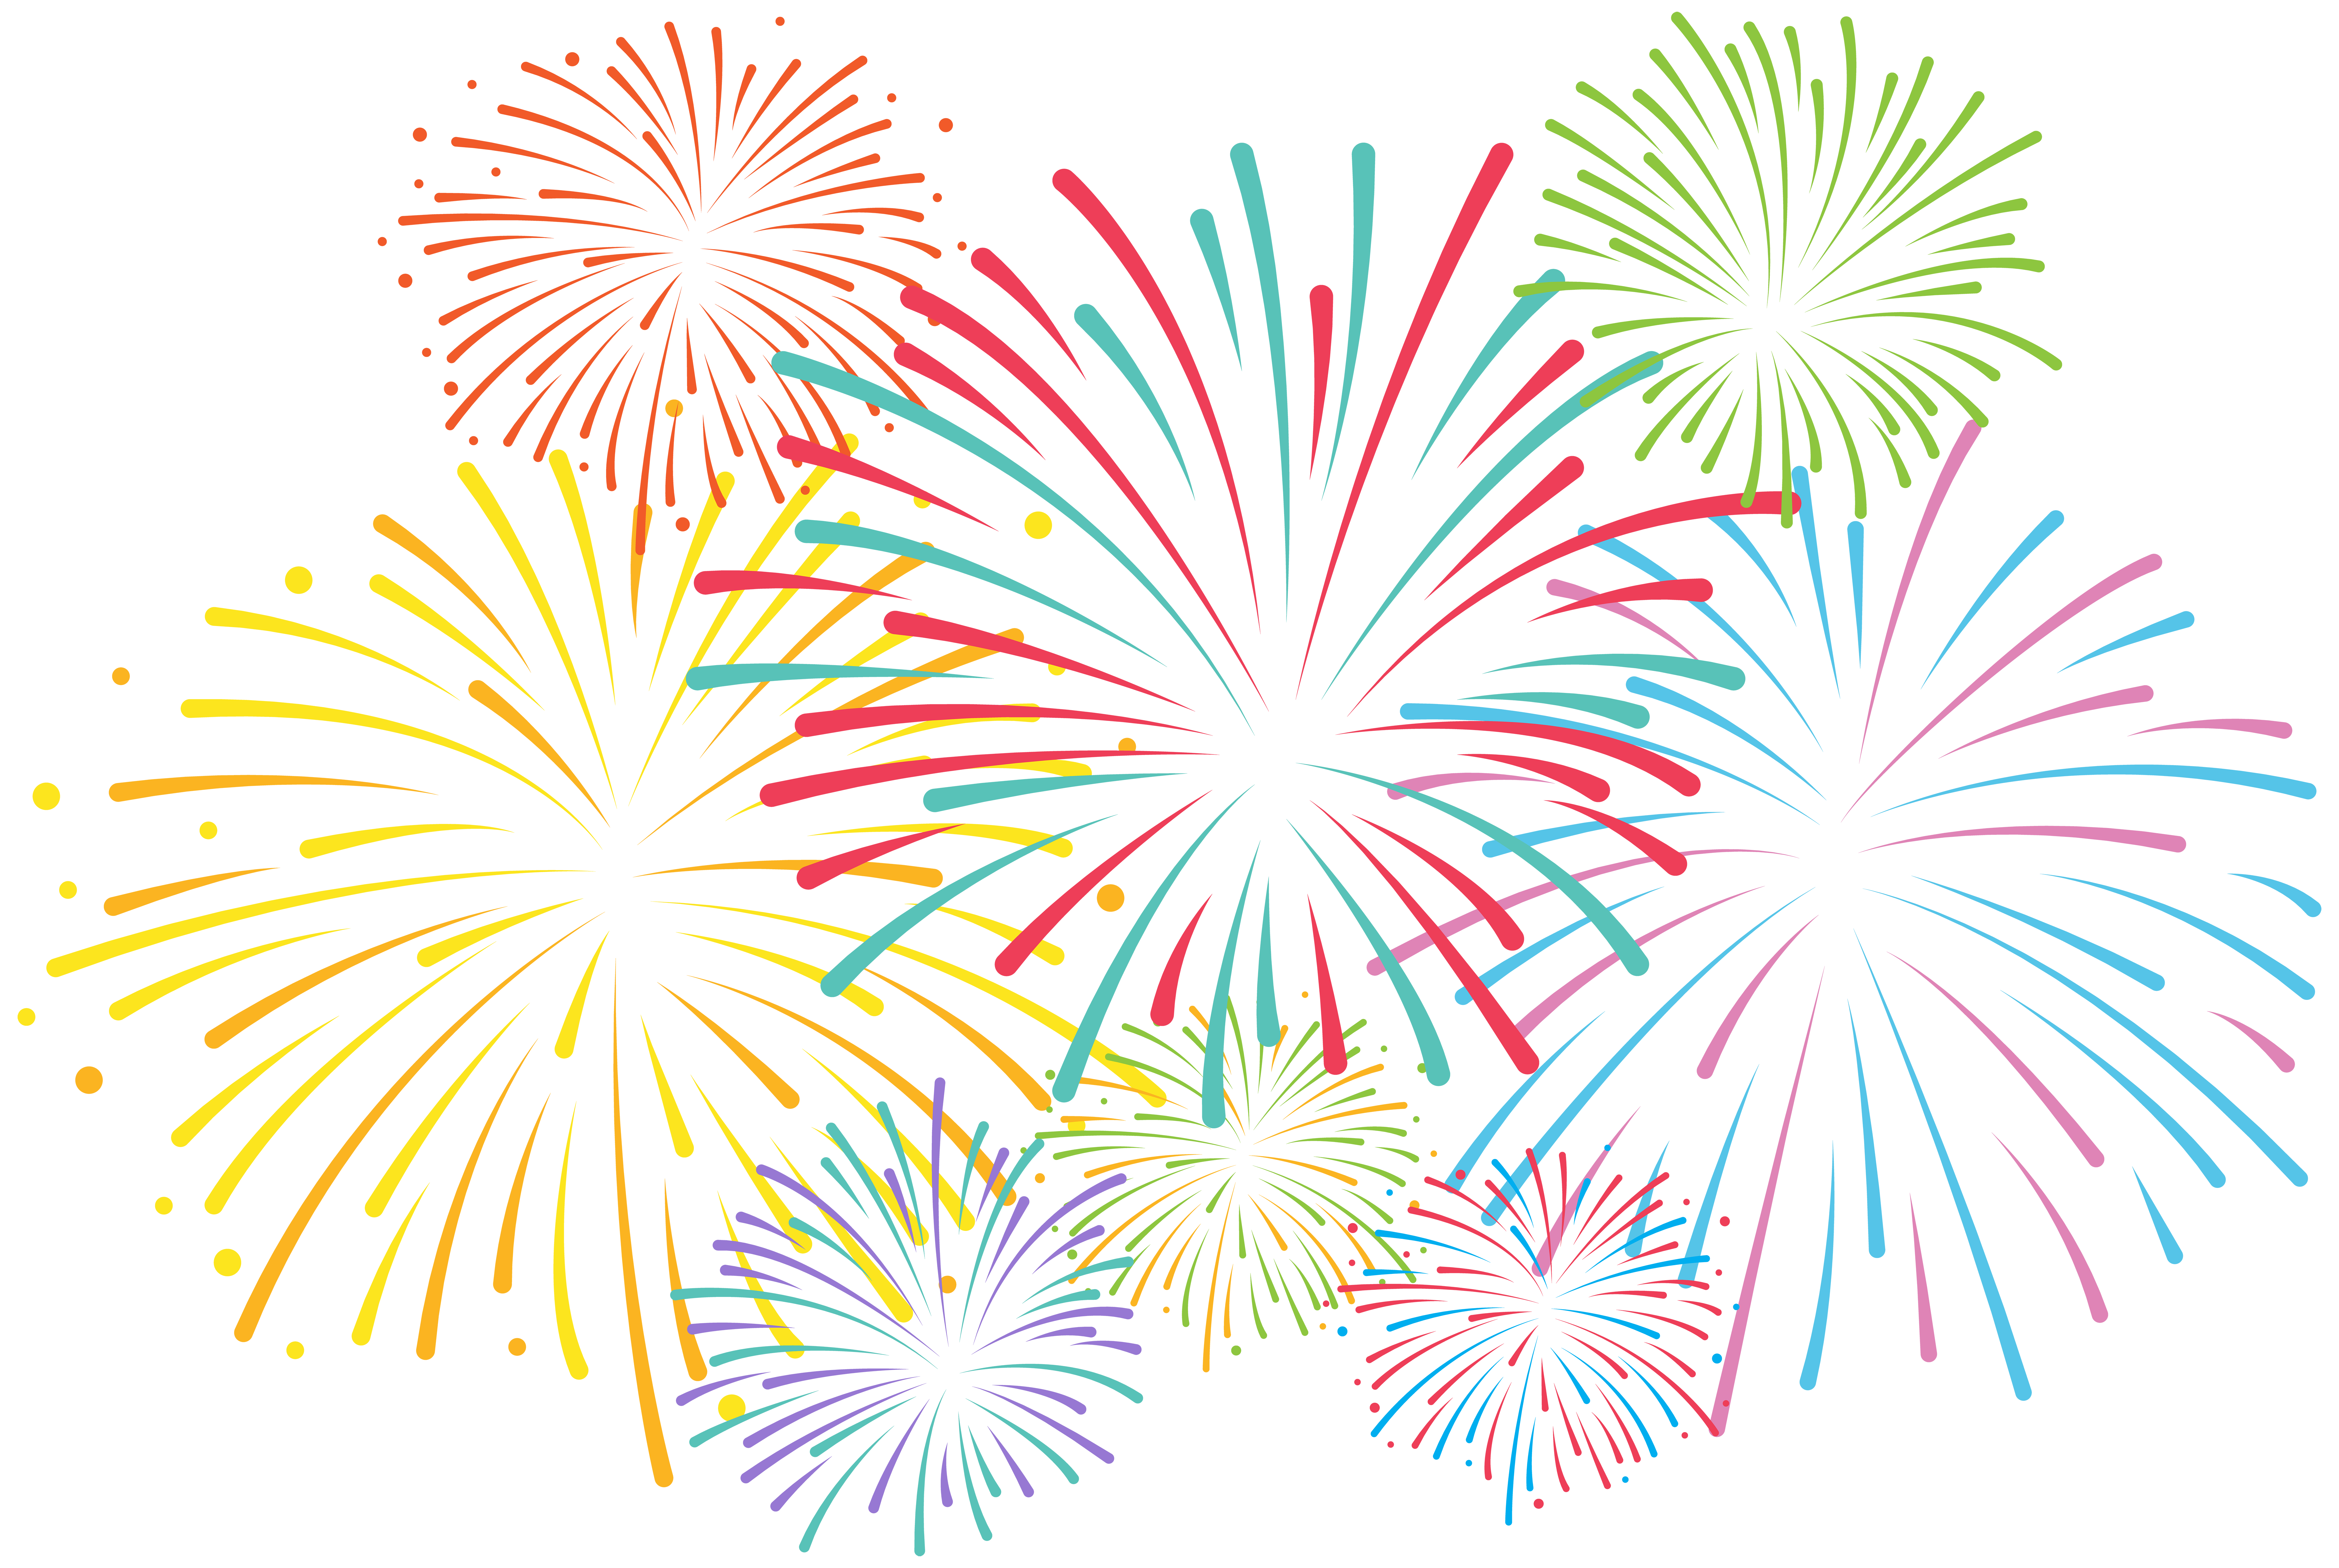 Firework star clipart. Fireworks animated animation in